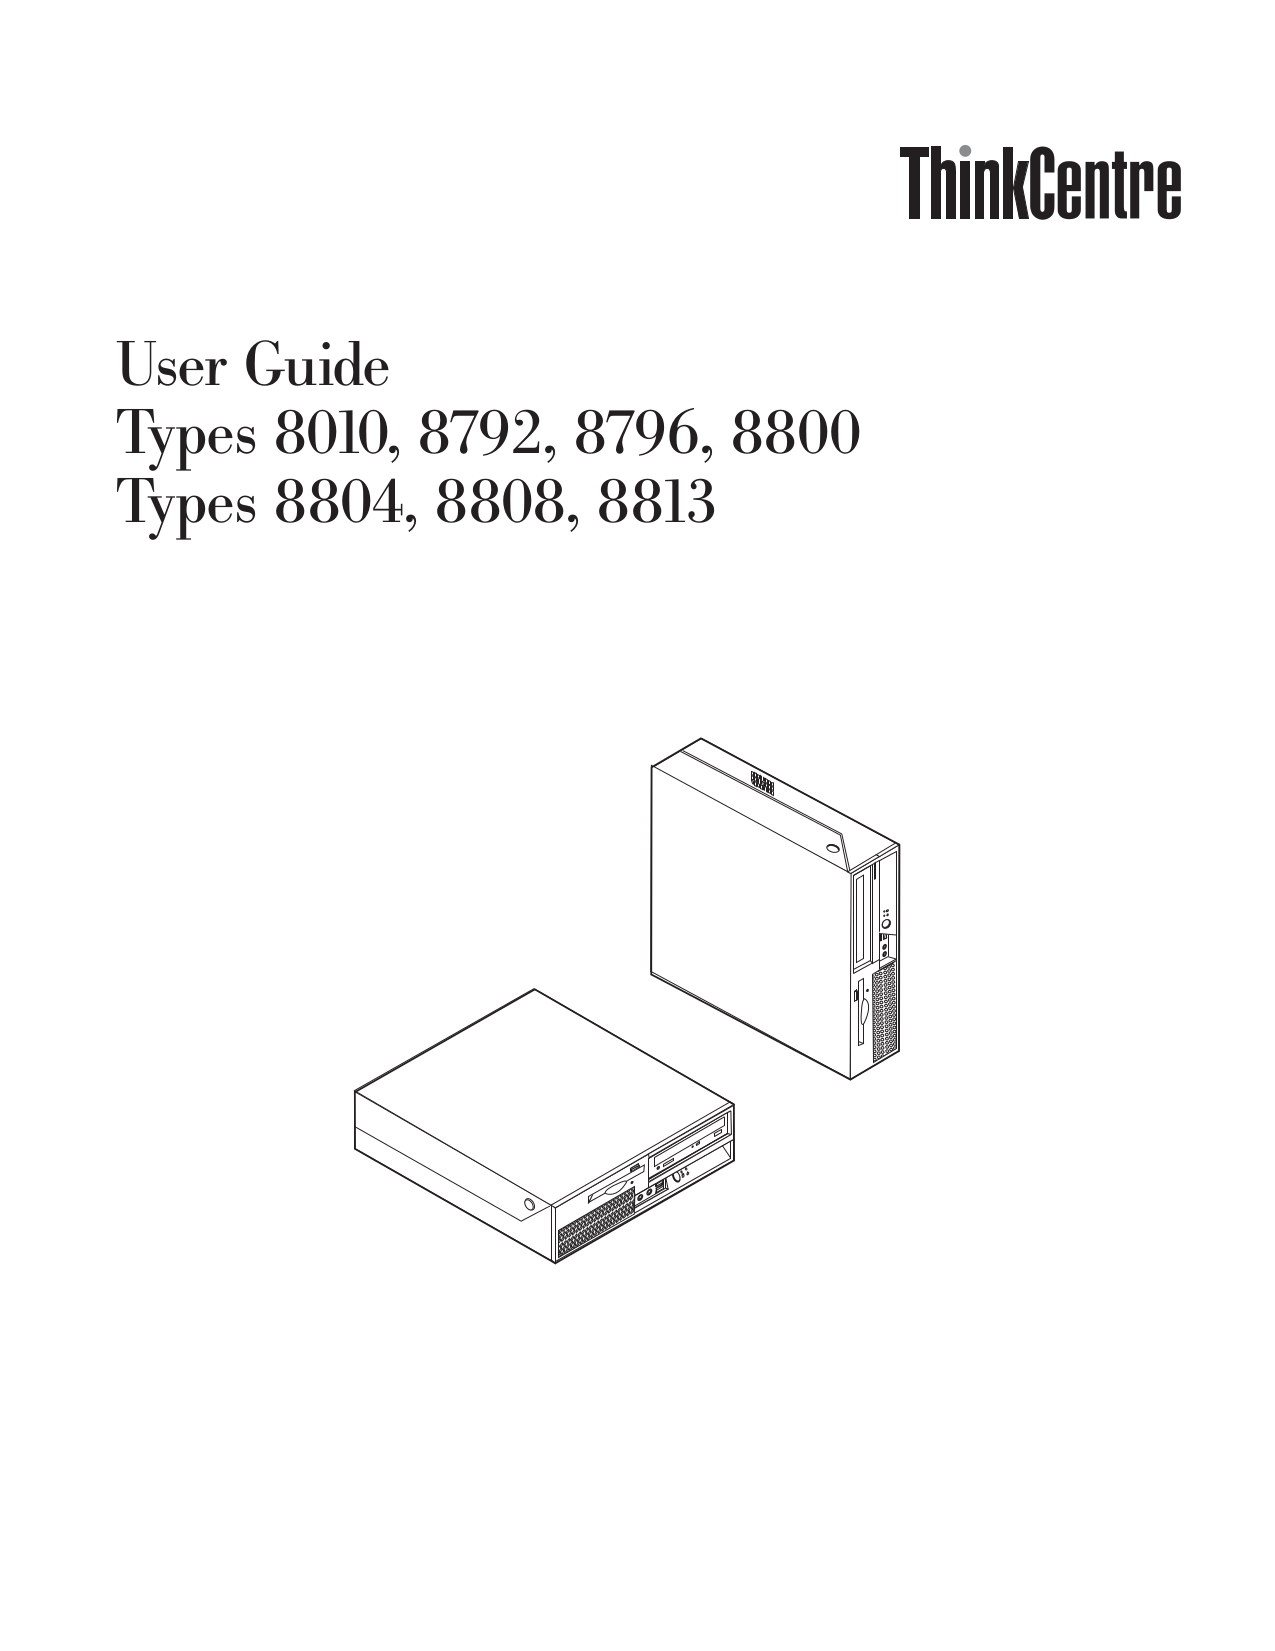 pdf for Lenovo Desktop ThinkCentre M55 8813 manual